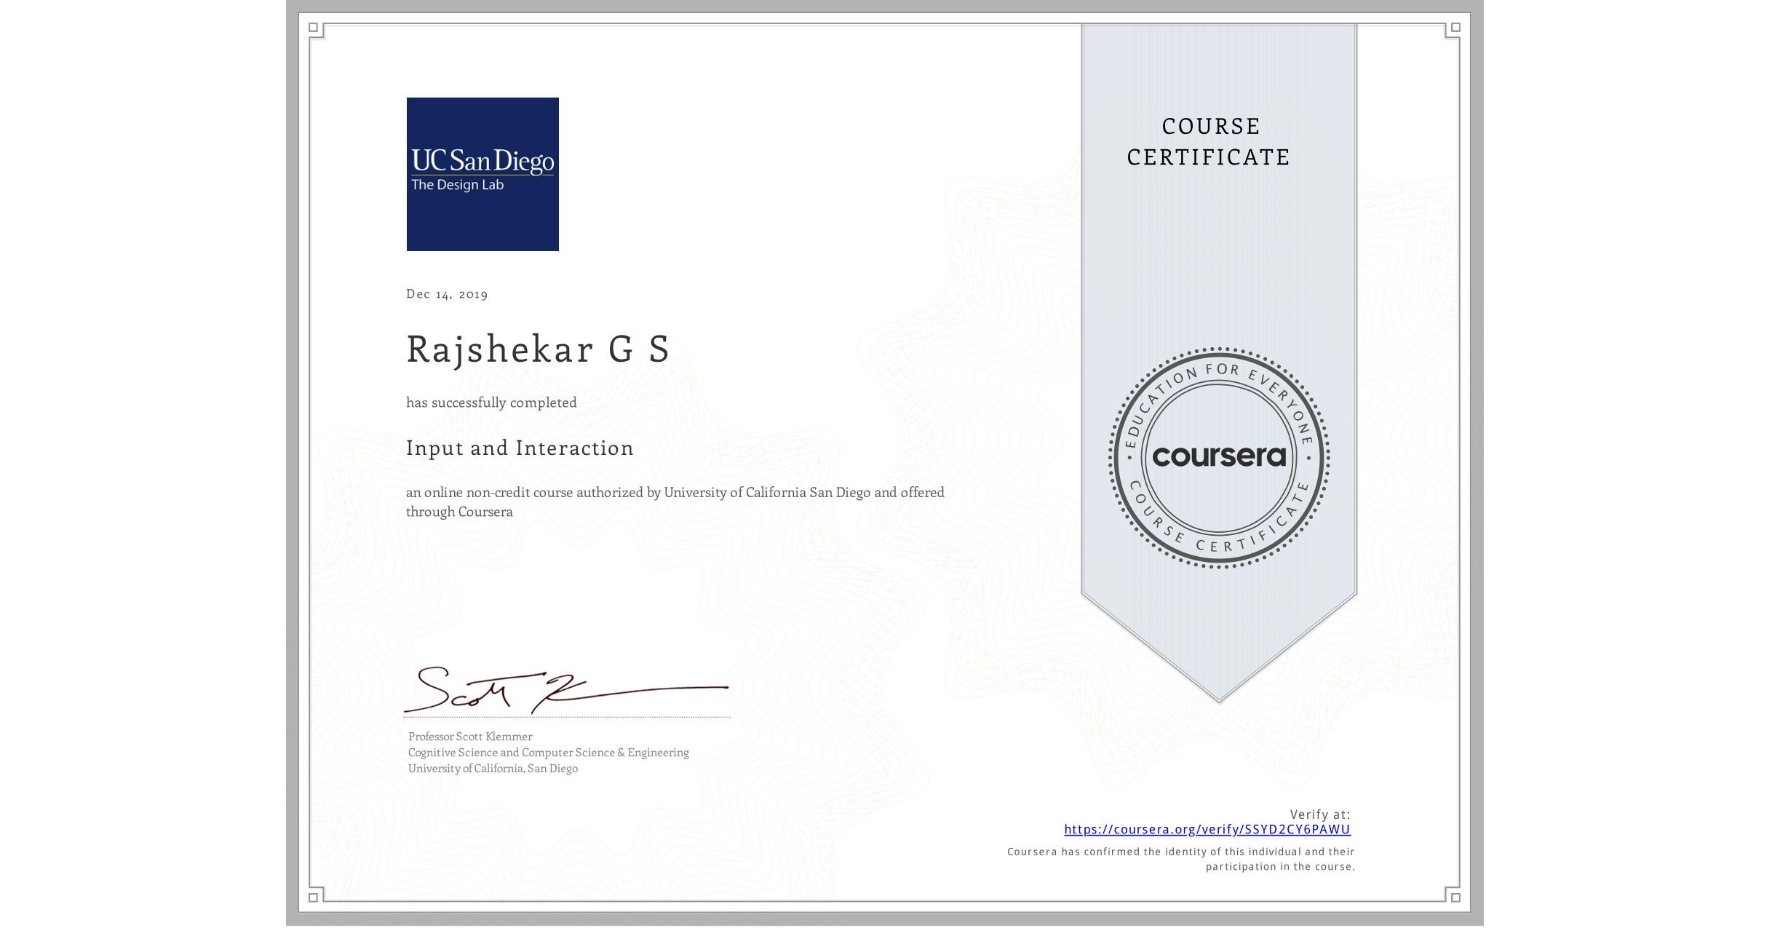 View certificate for Rajshekar G S, Input and Interaction, an online non-credit course authorized by University of California San Diego and offered through Coursera